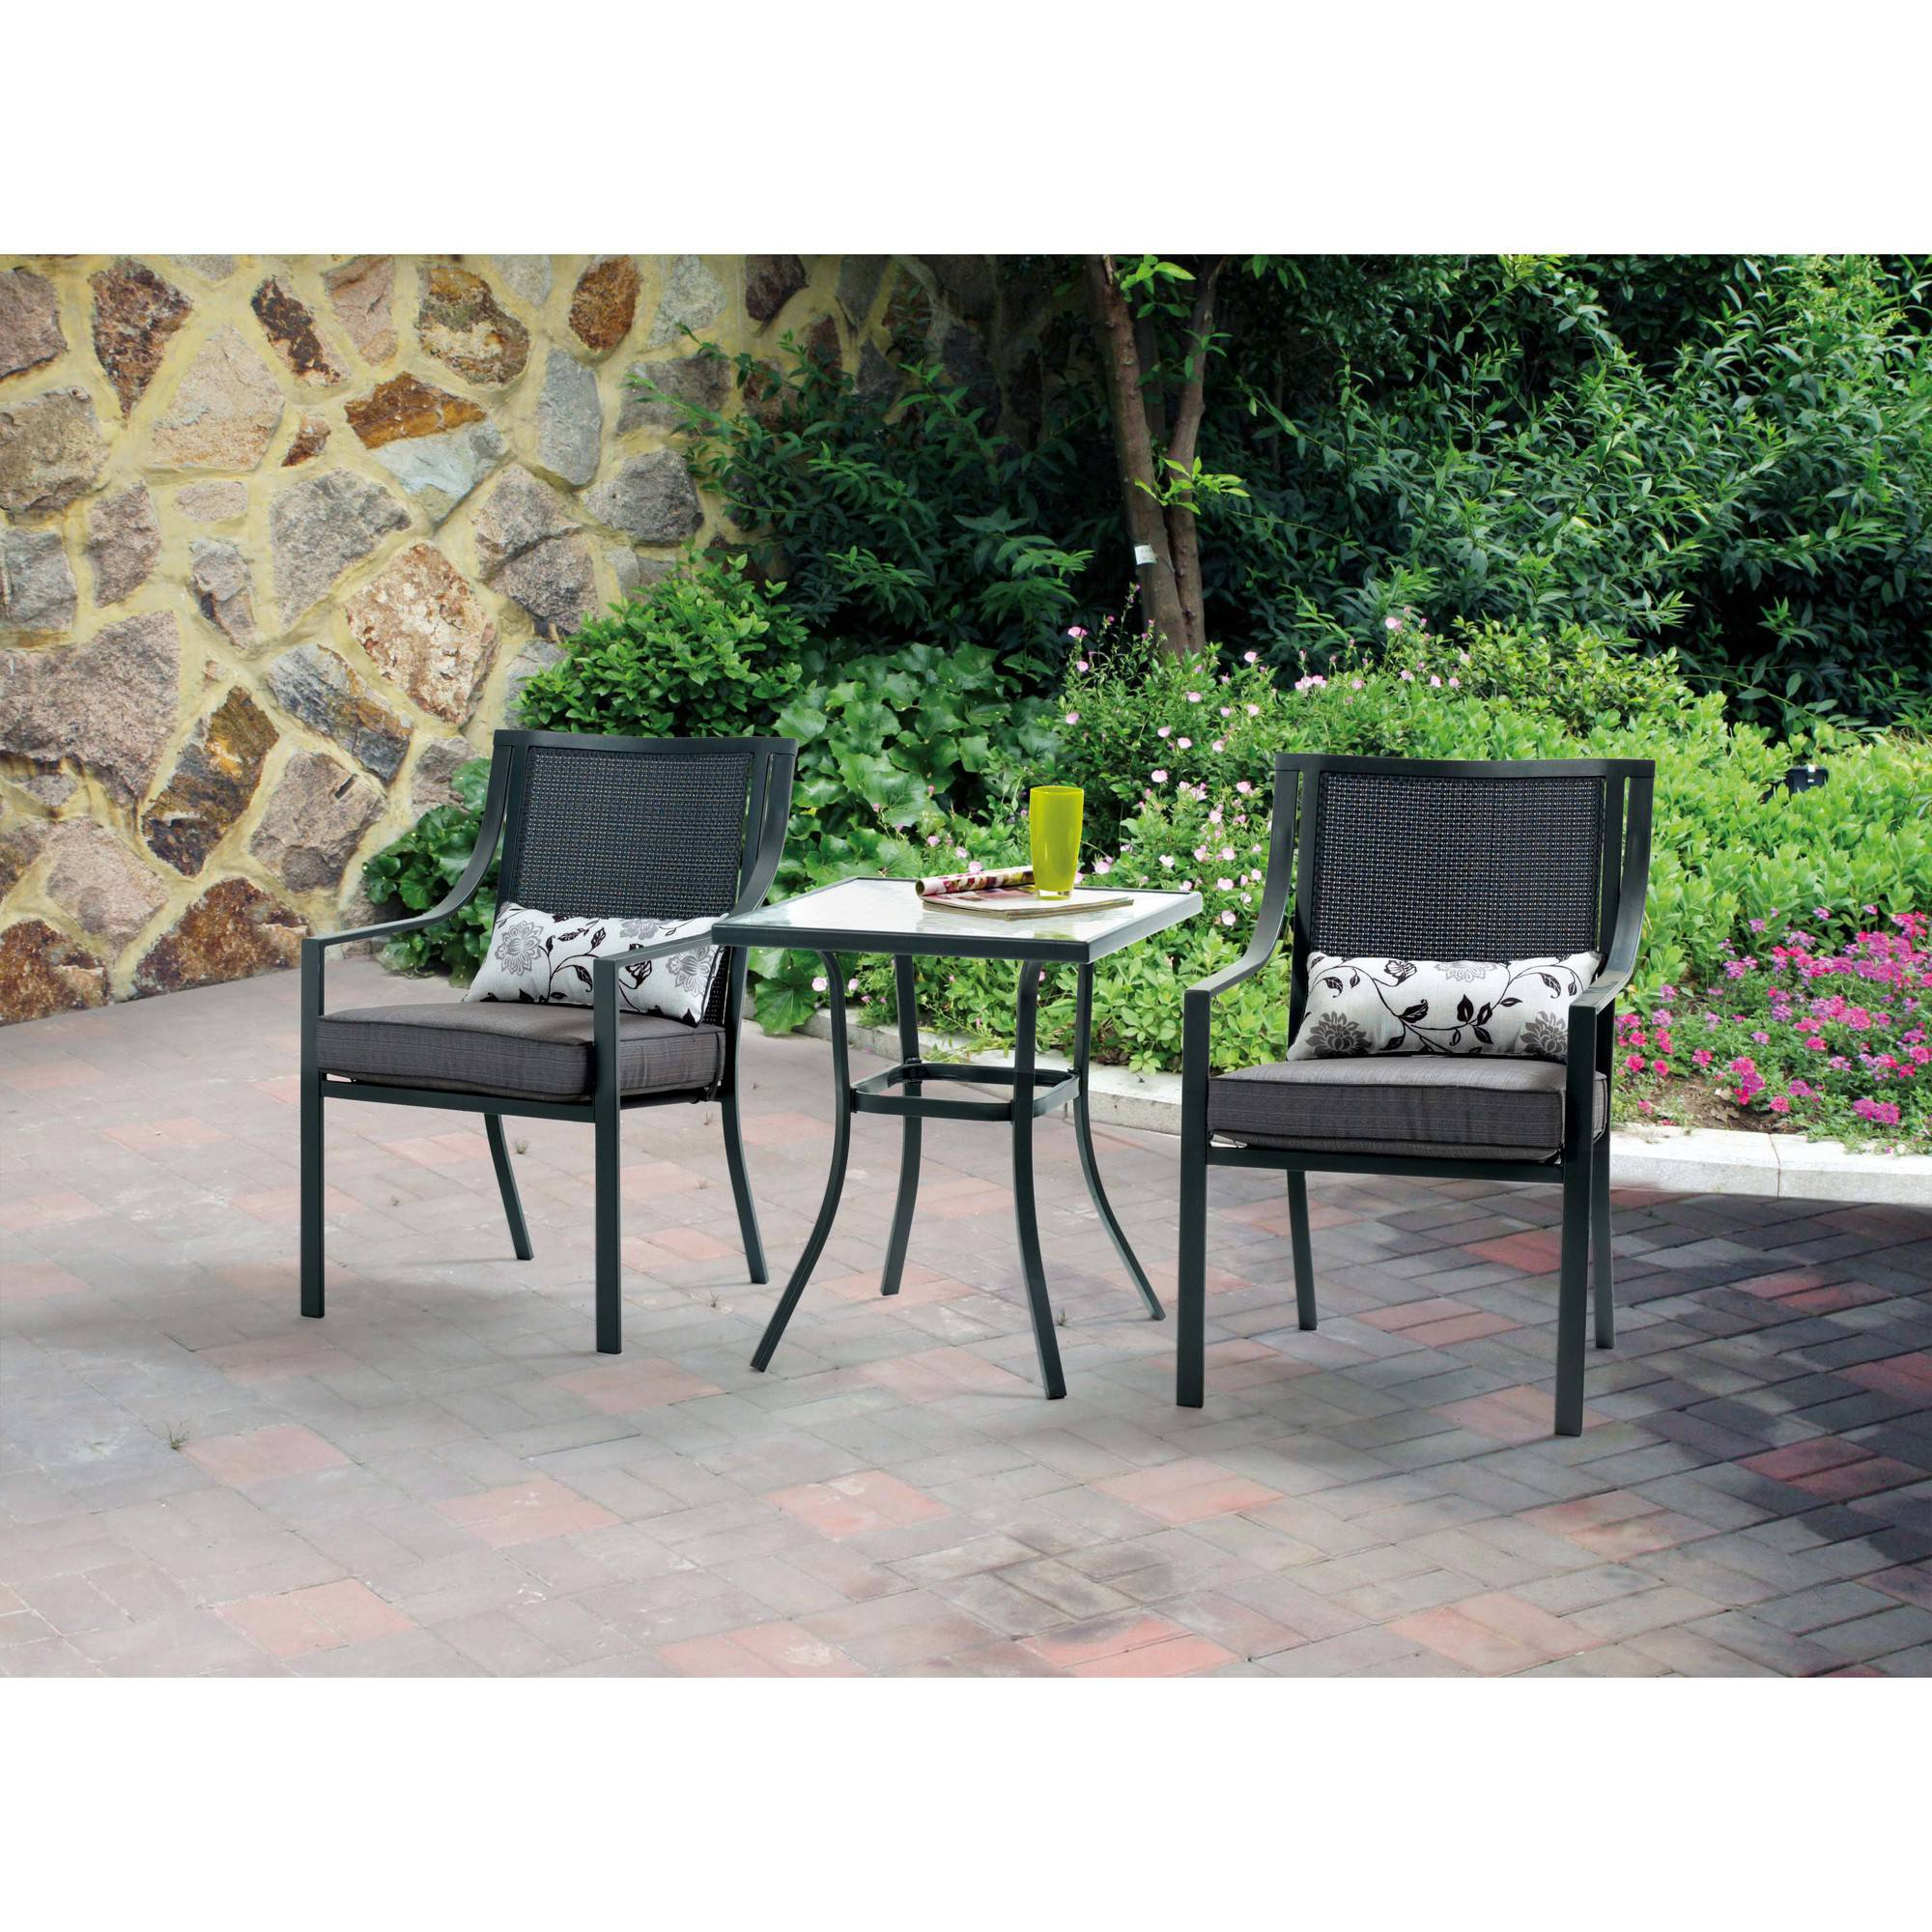 Mainstays Wesley Creek 3-Piece Bistro Set with Swivel Chairs - Walmart.com  sc 1 st  Walmart : table and chair patio set - pezcame.com